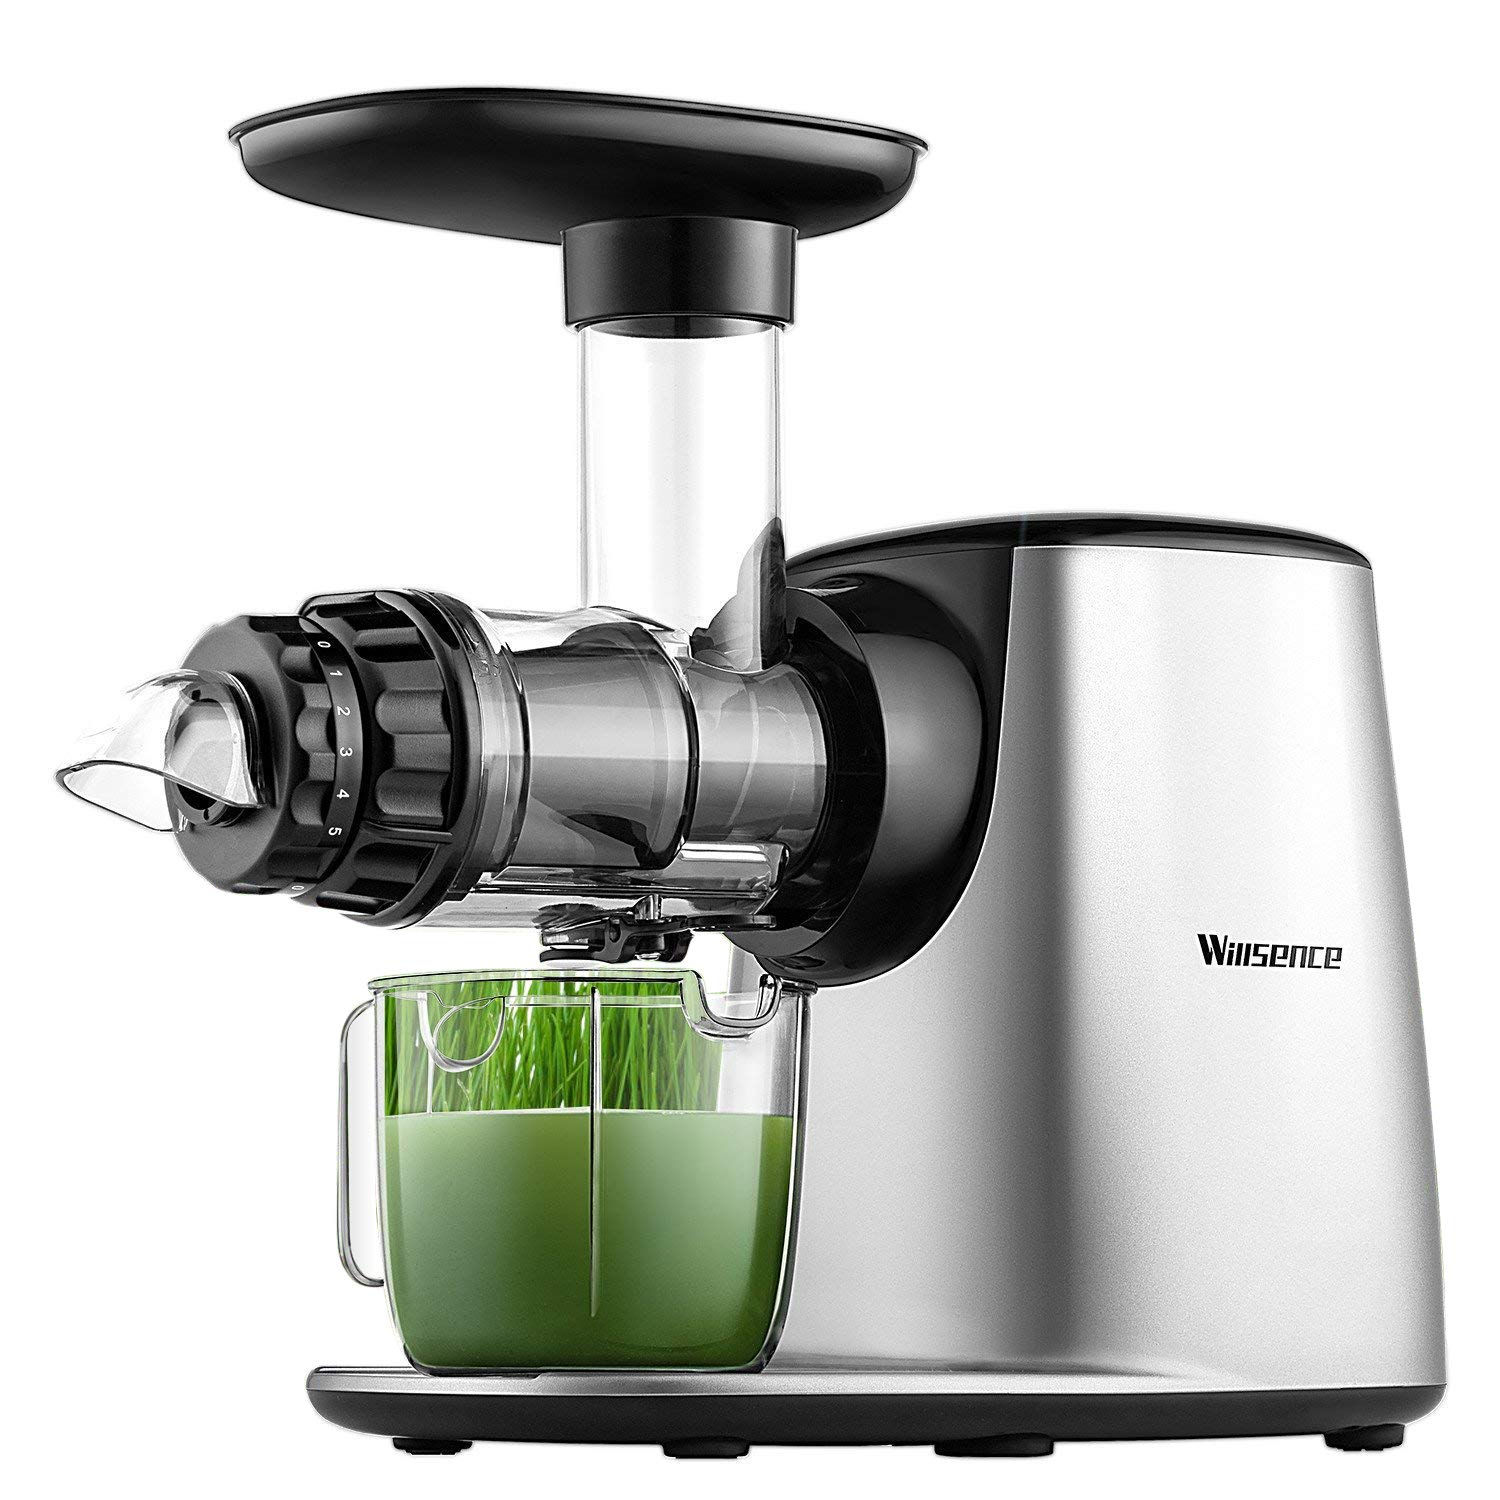 Juicer Machine, Willsence Slow Masticating Juice Extractor with 5 Mode Adjustment, Clod Press Juicer with Reverse Function, Anti-Drip, Quiet Motor, Recipes for Vegetables and Fruits, BPA-Free by Willsence